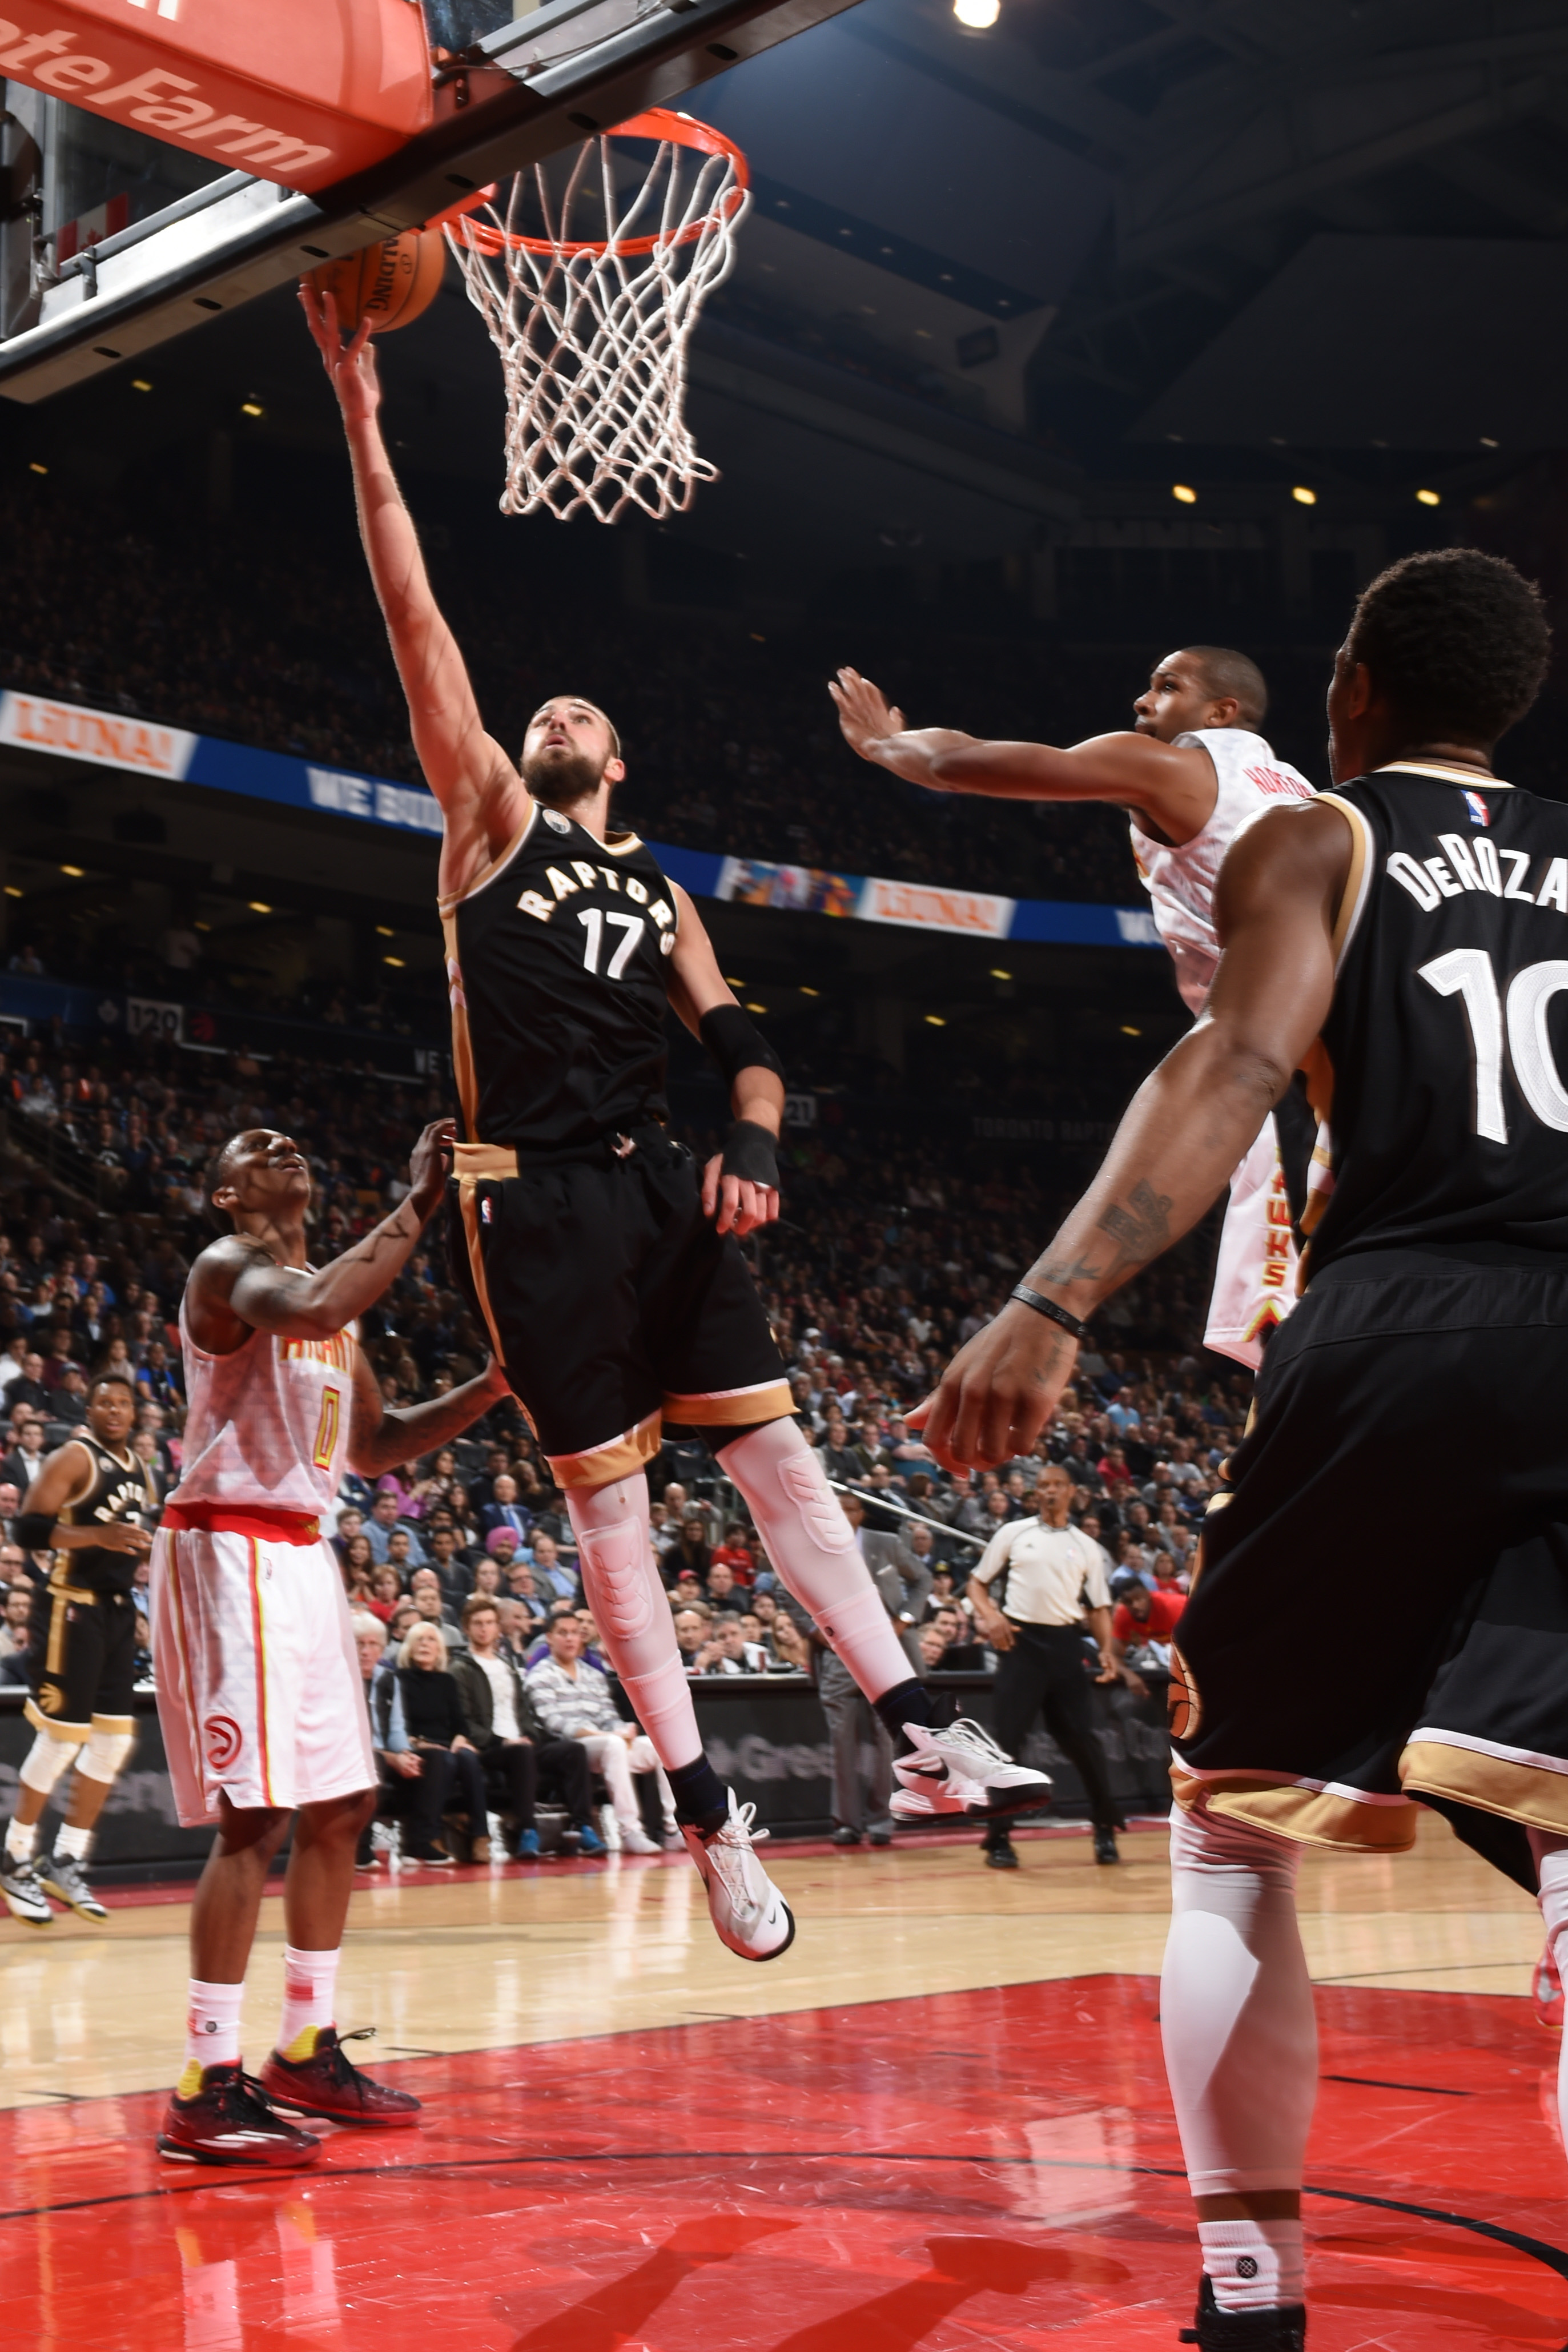 TORONTO, CAN  - MARCH 30: Jonas Valanciunas #17 of the Toronto Raptors goes for the lay up against the Atlanta Hawks during the game on March 30, 2016 at Air Canada Centre in Toronto, Canada. (Photo by Ron Turenne/NBAE via Getty Images)